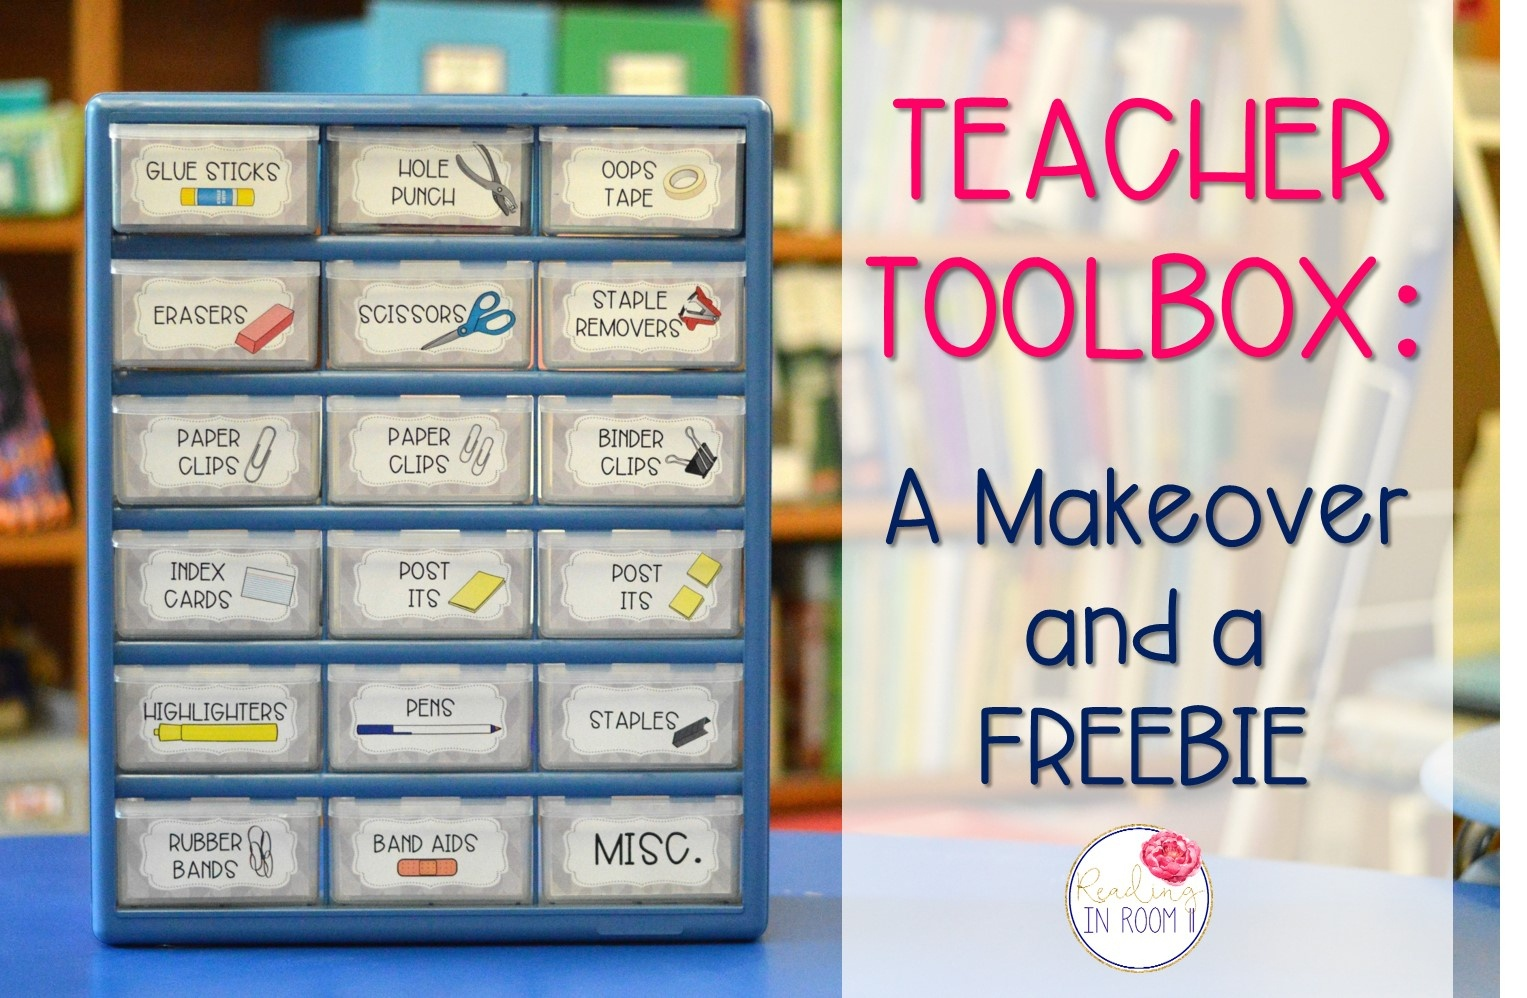 Printable Labels For Teacher Toolbox | Download Them Or Print - Free - Free Printable Teacher Toolbox Labels